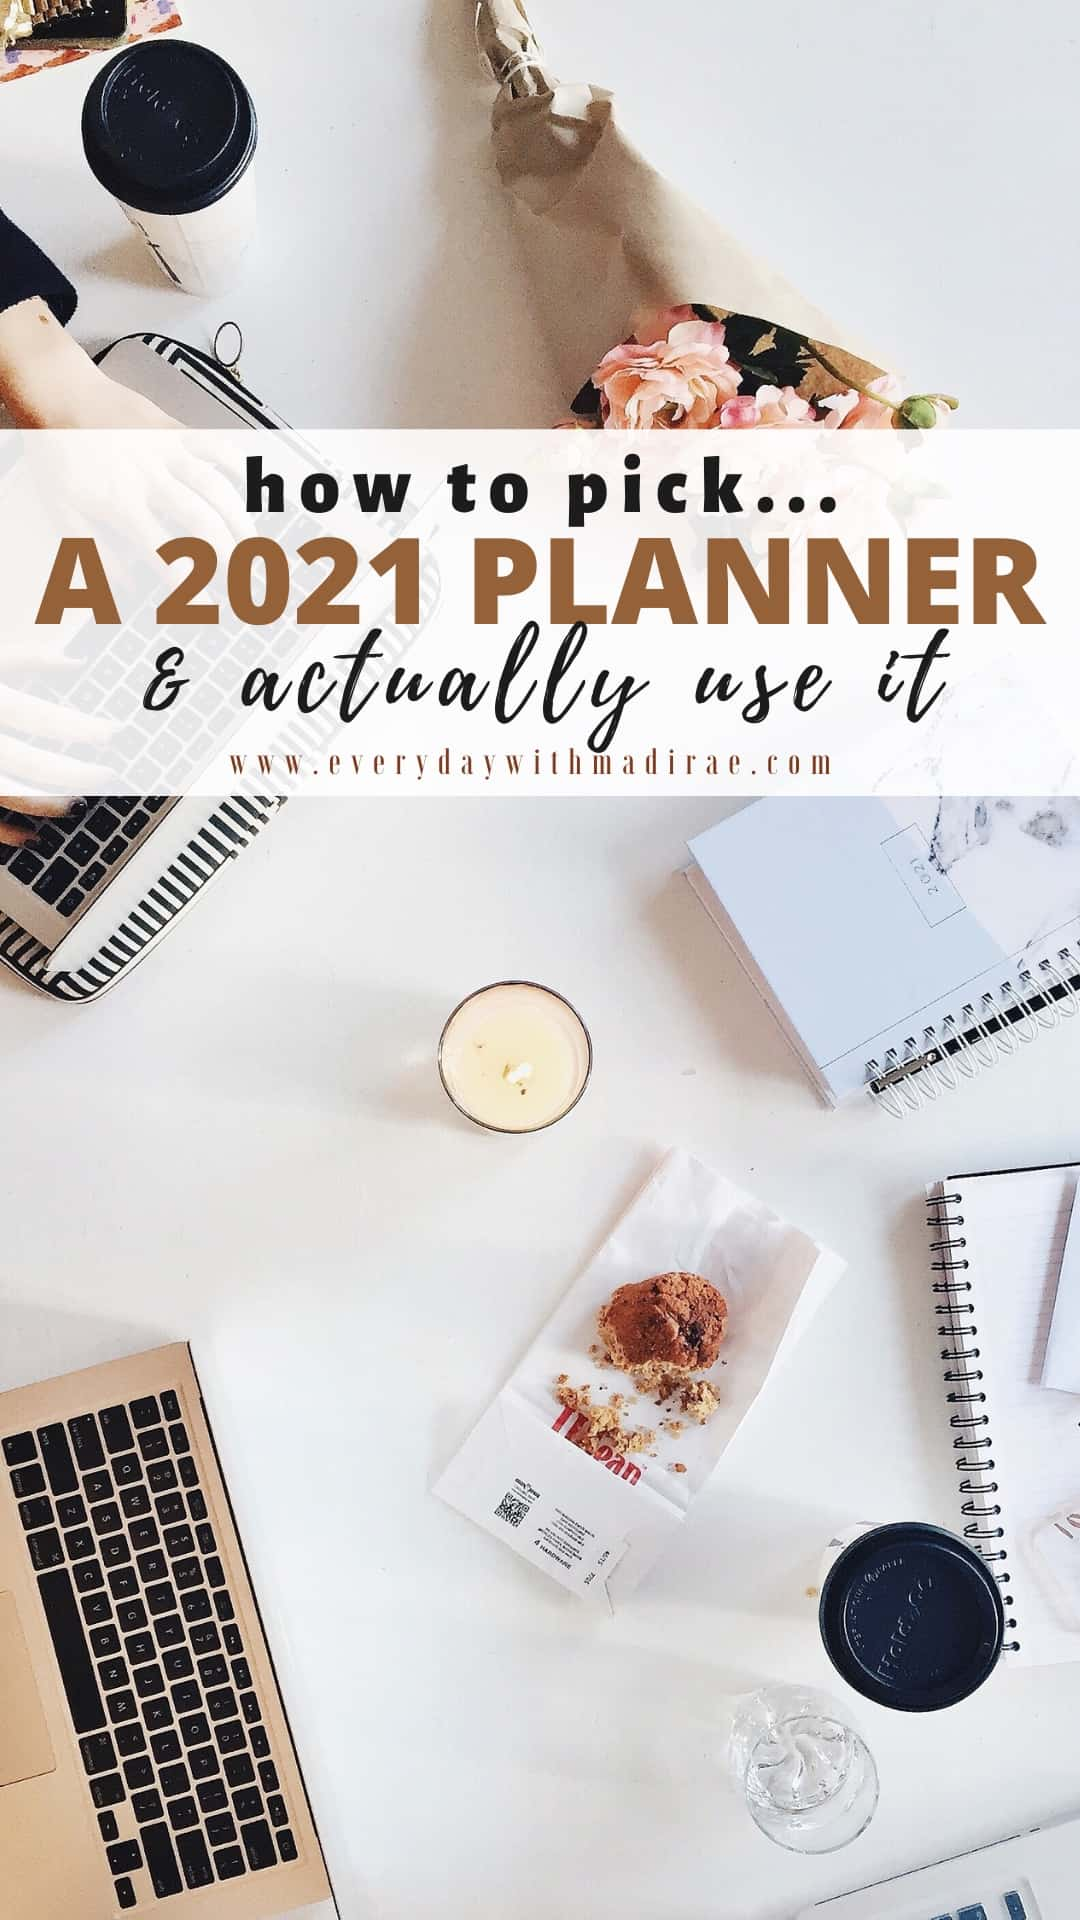 Sharing how to choose a 2021 yearly planner, what I look for in my personal planner, & how to actually utilize a yearly planner effectively!